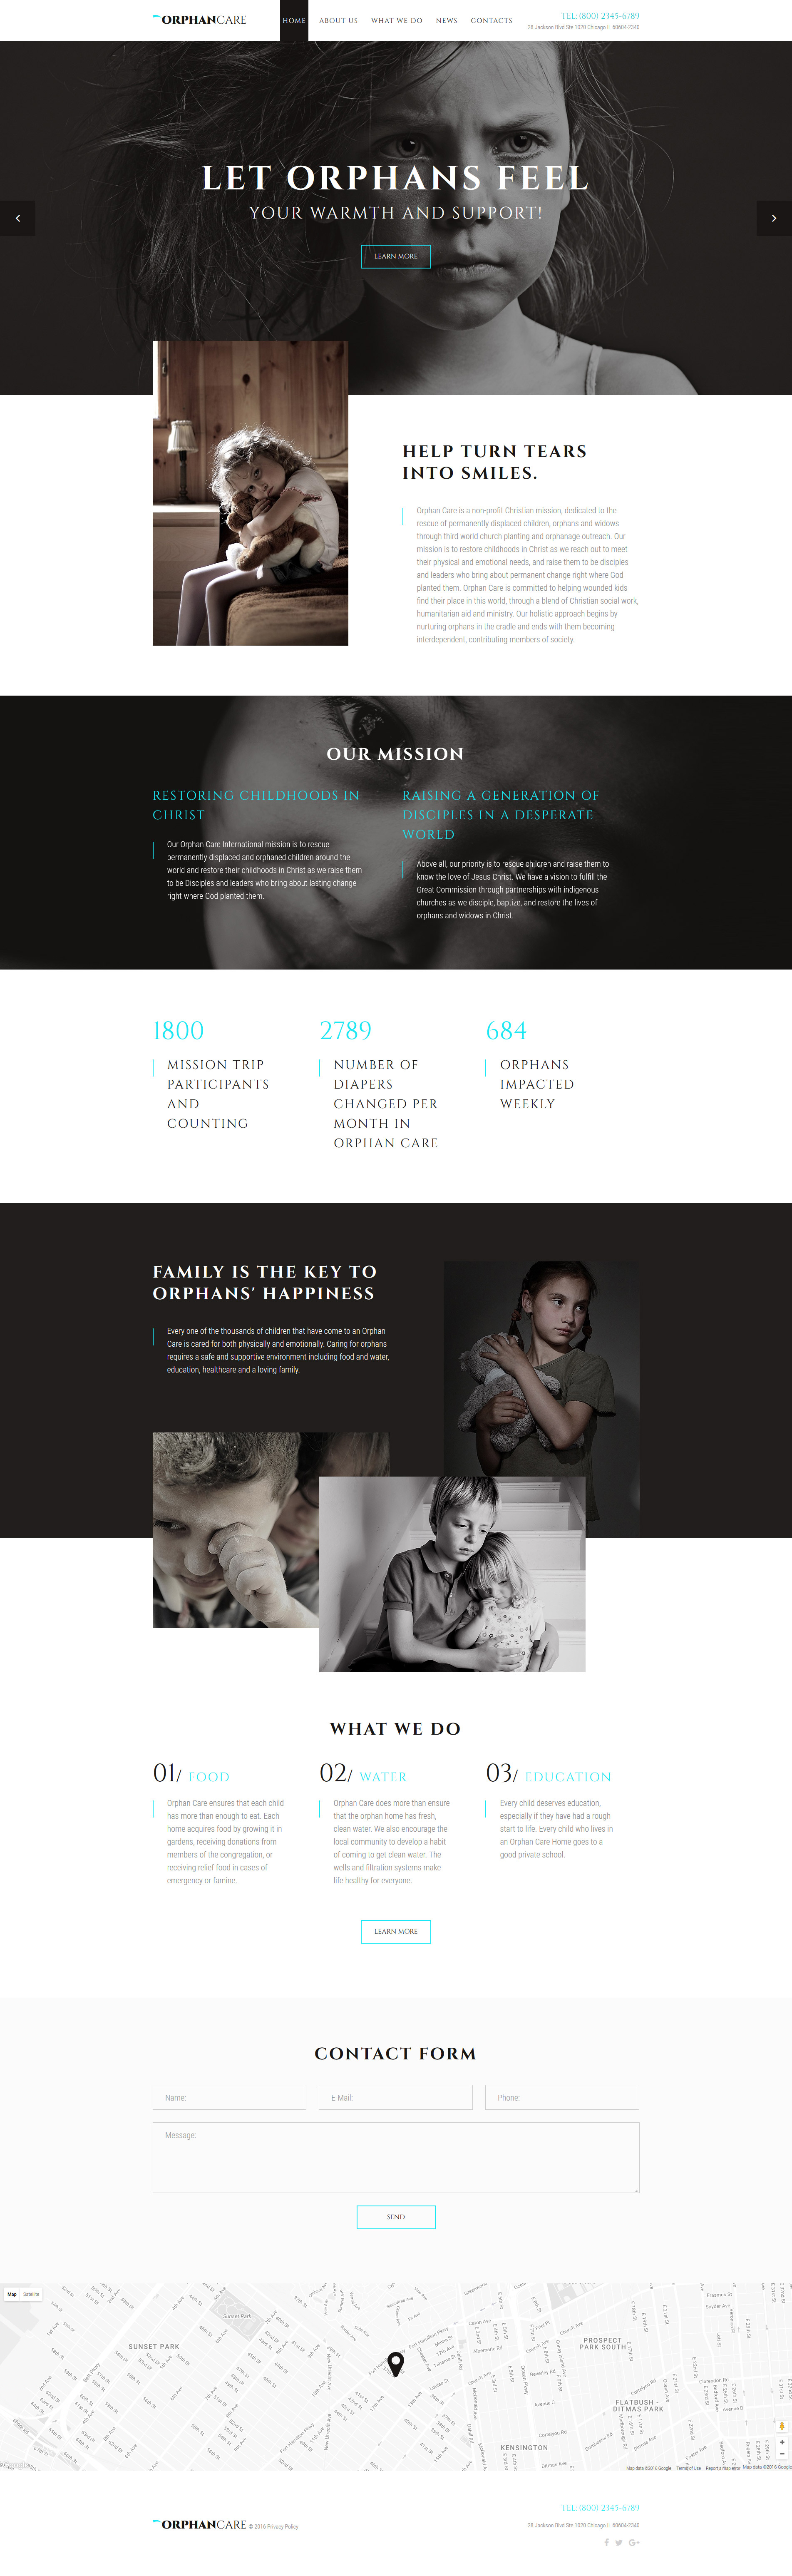 OrphanCare - Child Charity & Fundraising Website Template